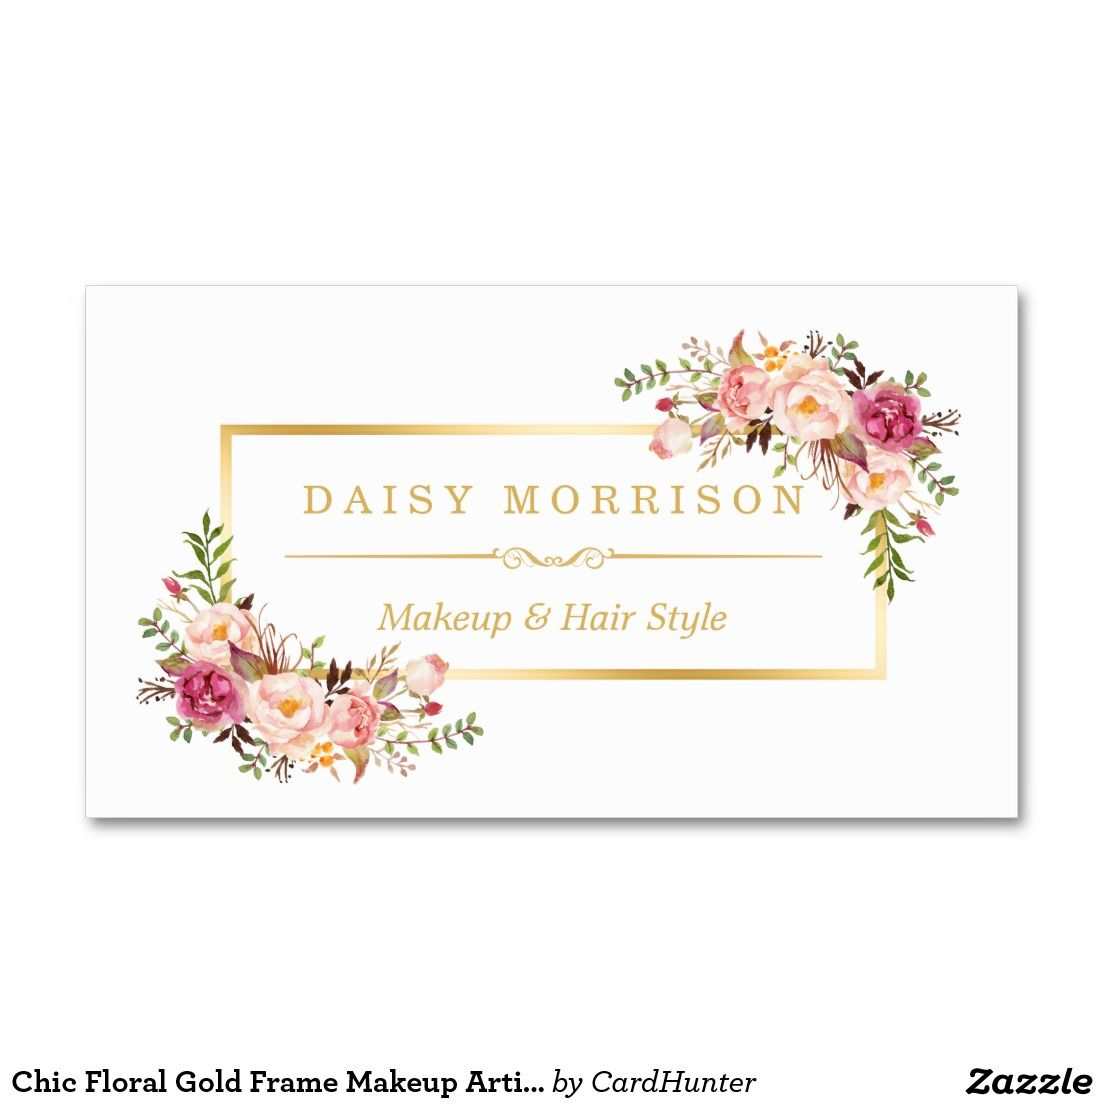 Chic floral gold frame makeup artist beauty salon business card chic floral gold frame makeup artist beauty salon business card magicingreecefo Gallery